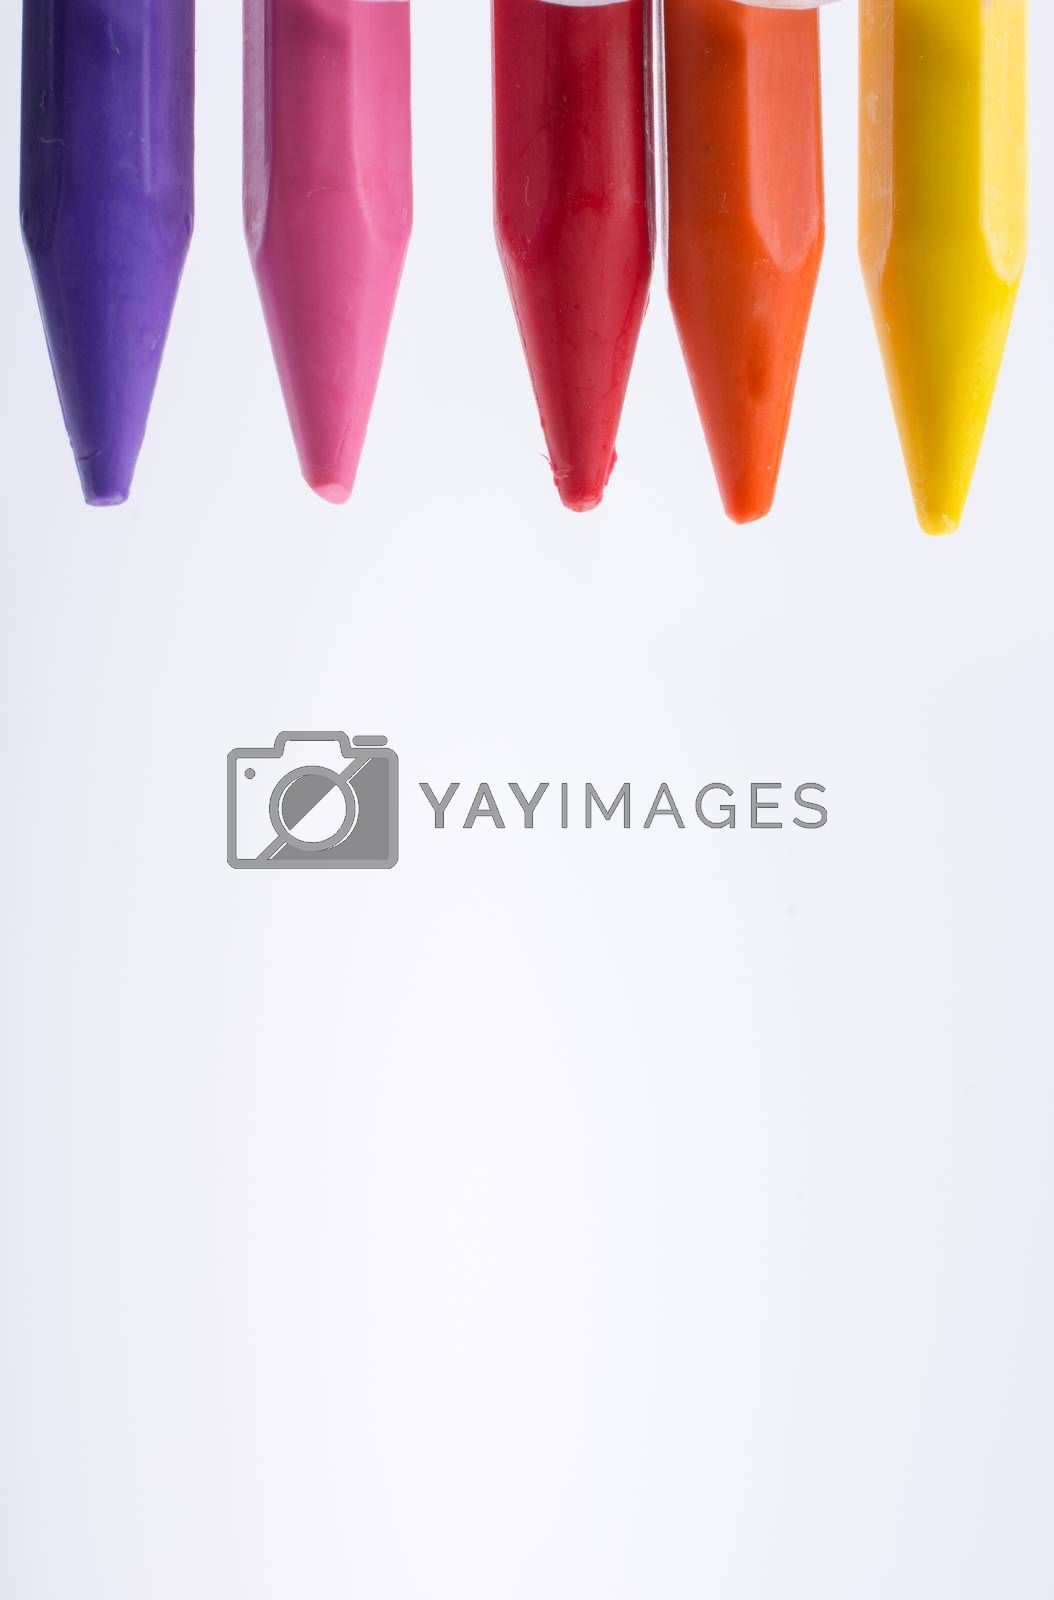 Crayons of various color on white background